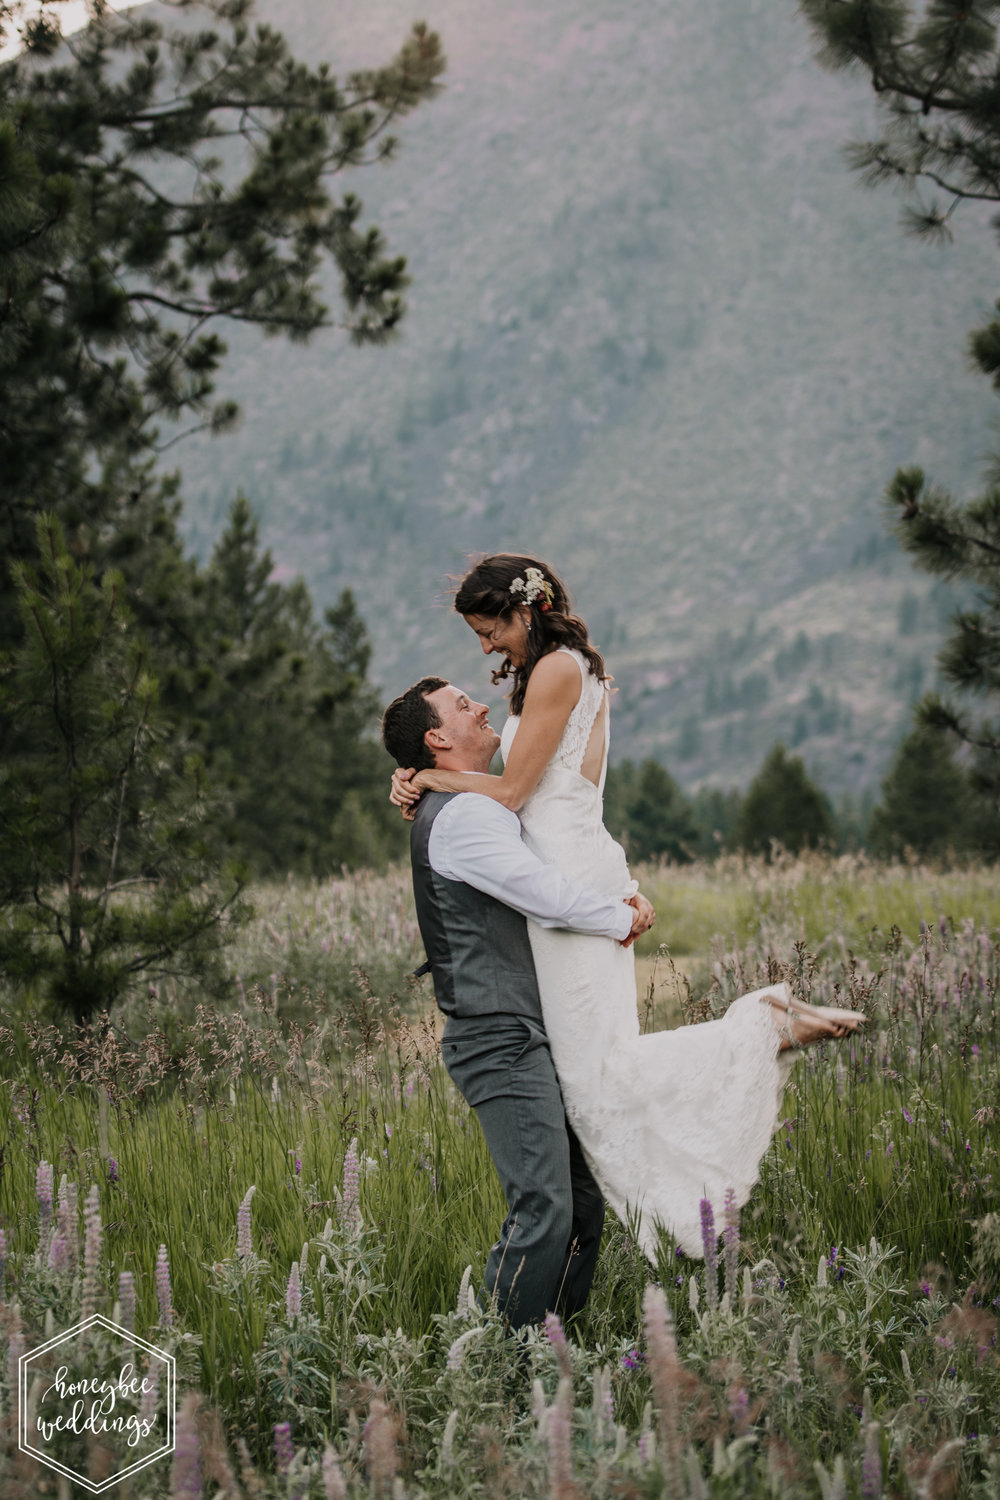 561 White Raven Wedding_Montana Wedding Photographer_Honeybee Weddings_ Meghan Maloney + Arza Hammond 2018-0244.jpg